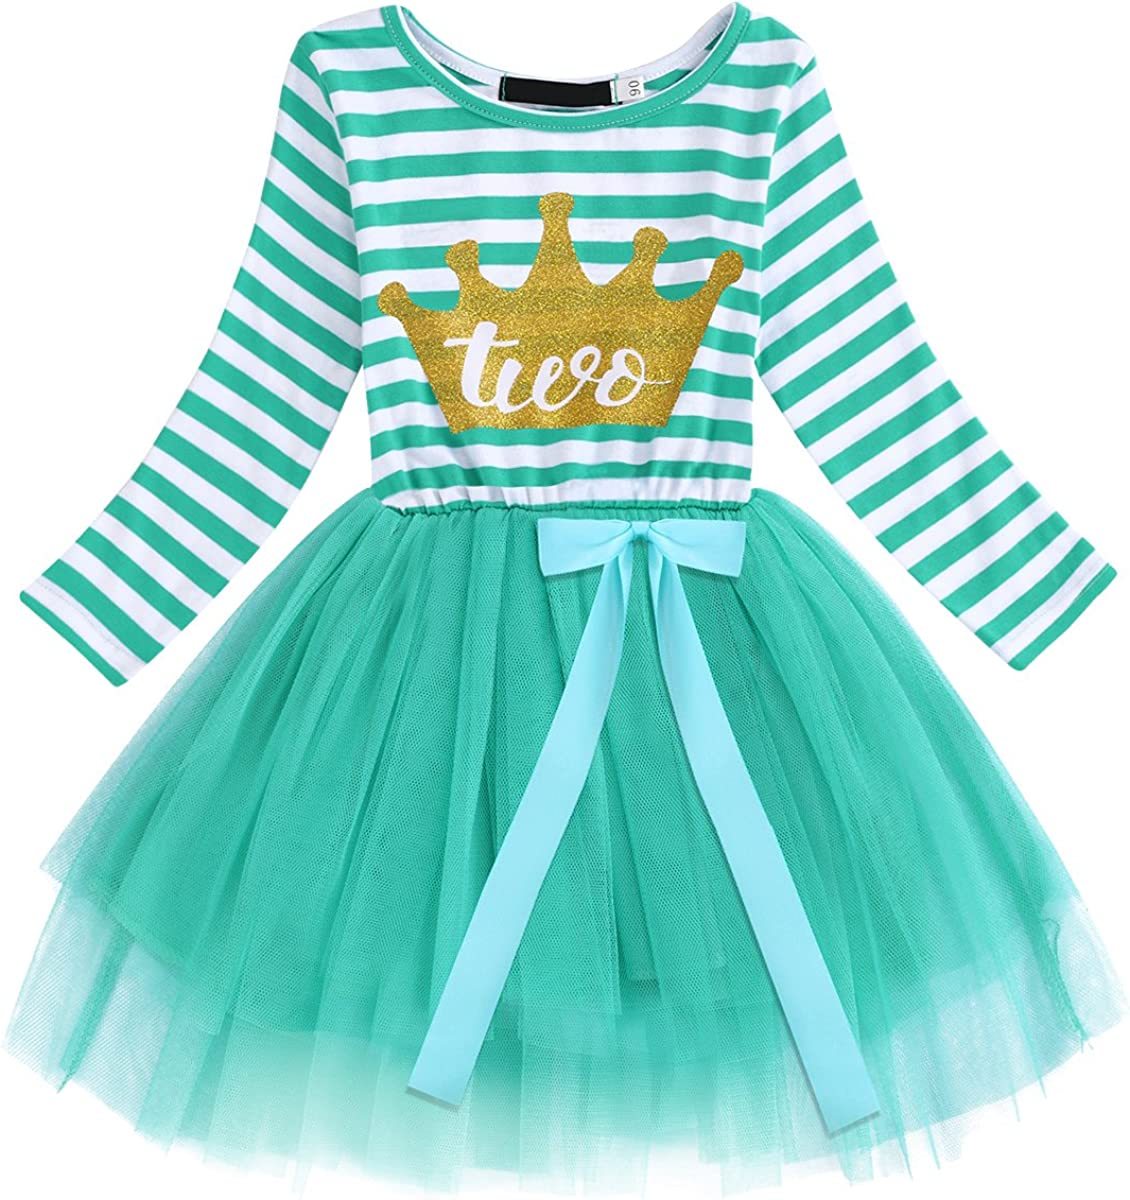 Baby Popular All items in the store product Girl Long Sleeve 1st 2nd Birthday 3rd Cake Tutu Party Smash